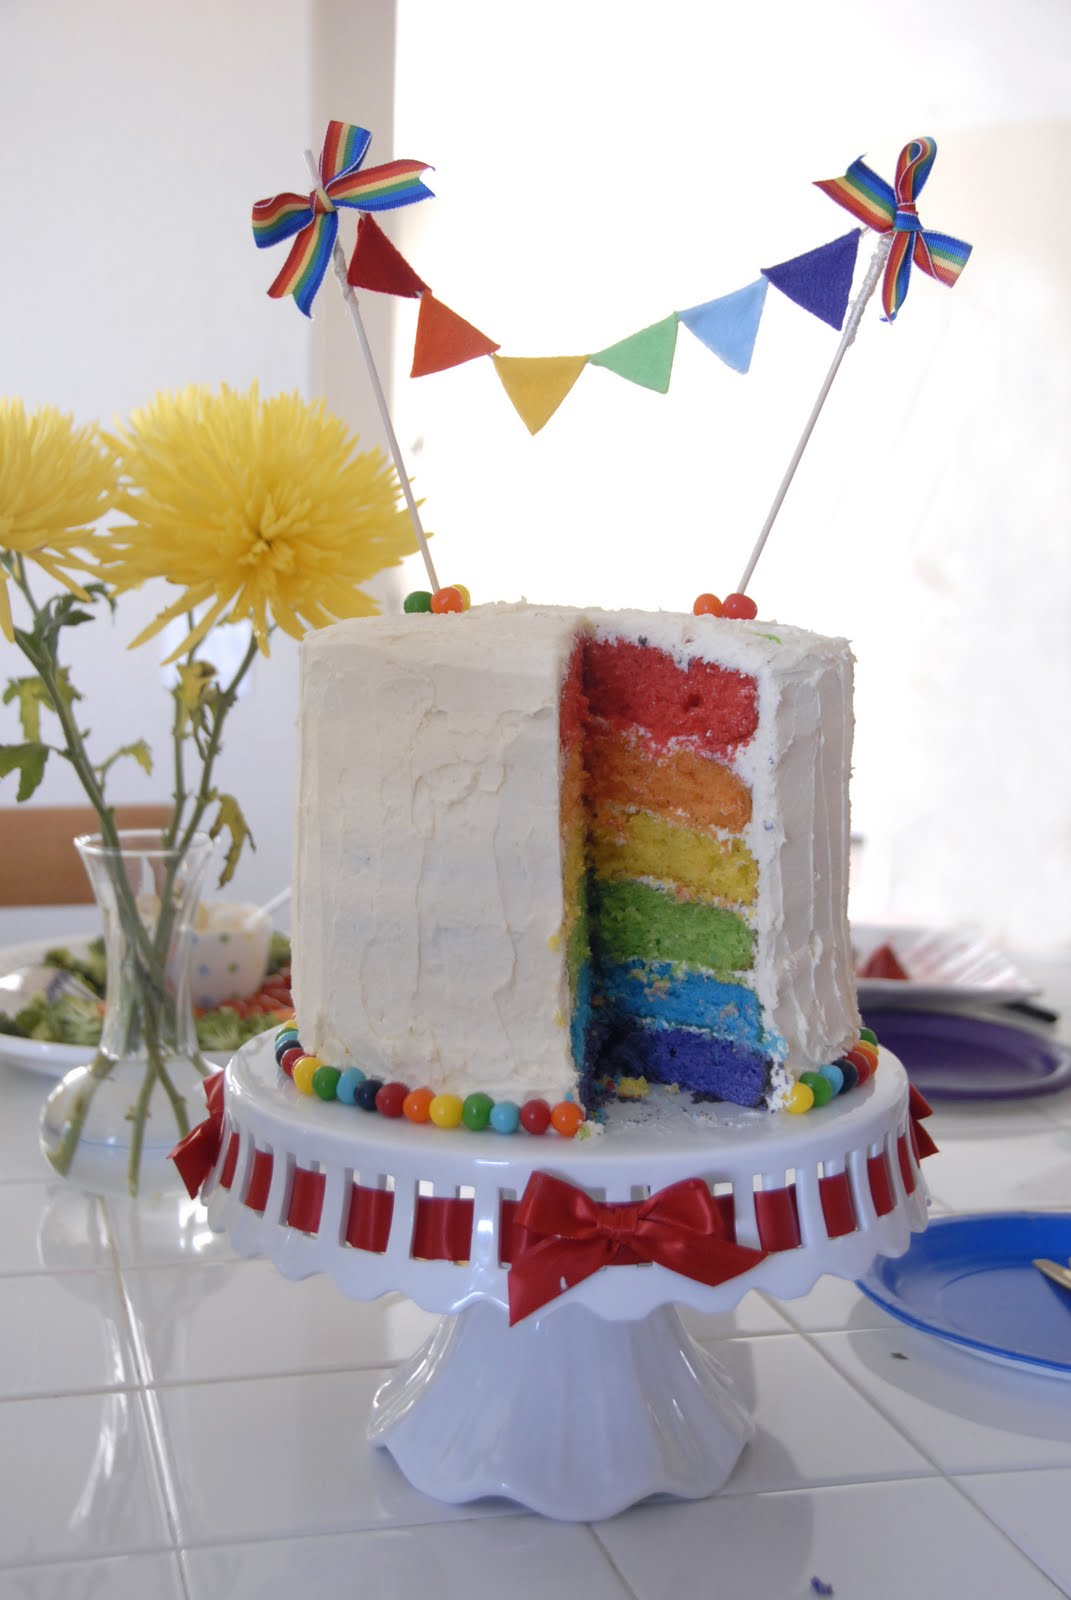 I Made A Simple Pennant Bunting By Gluing Colored Felt To Twine And Lined The Bottom Of Cake With Chewy Lemonheads In Rainbow Order